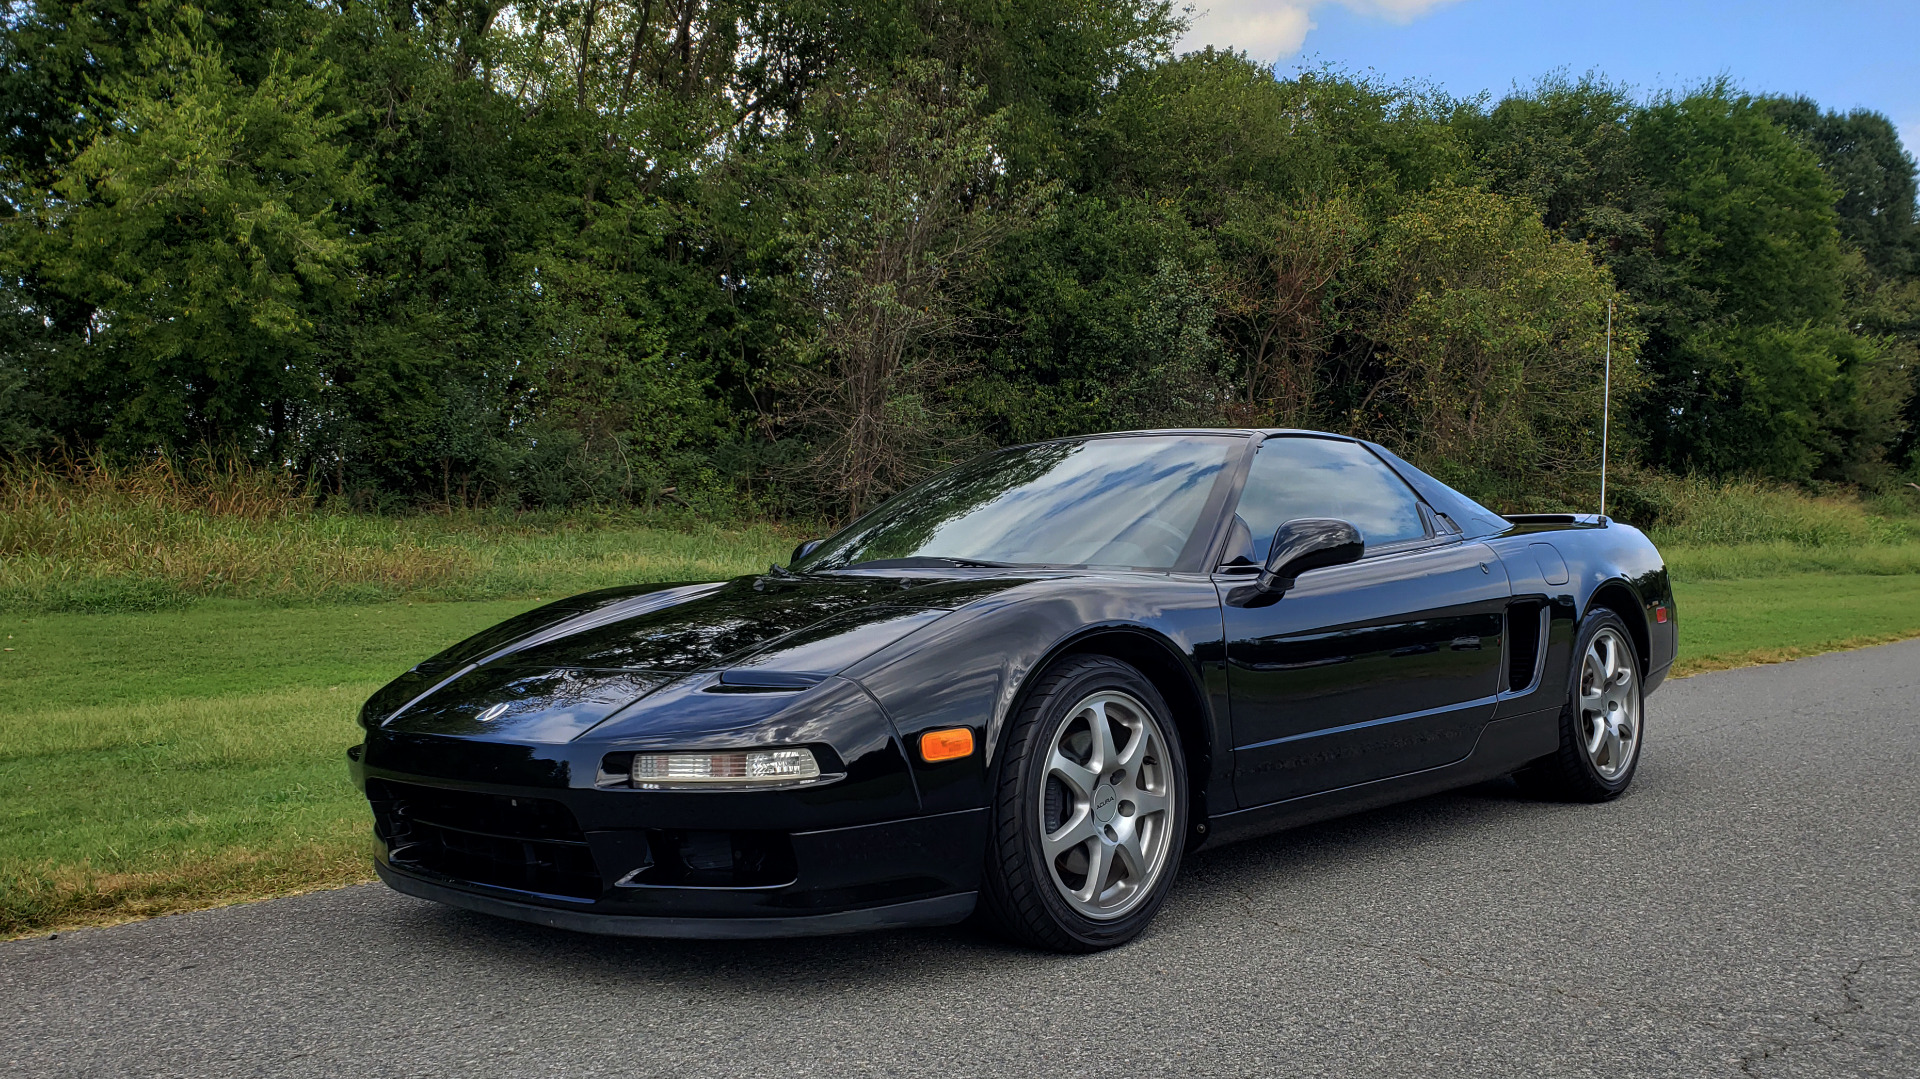 Used 1995 Acura NSX OPEN TOP / 5-SPD MAN / LOW MILES / SUPER CLEAN for sale Sold at Formula Imports in Charlotte NC 28227 7